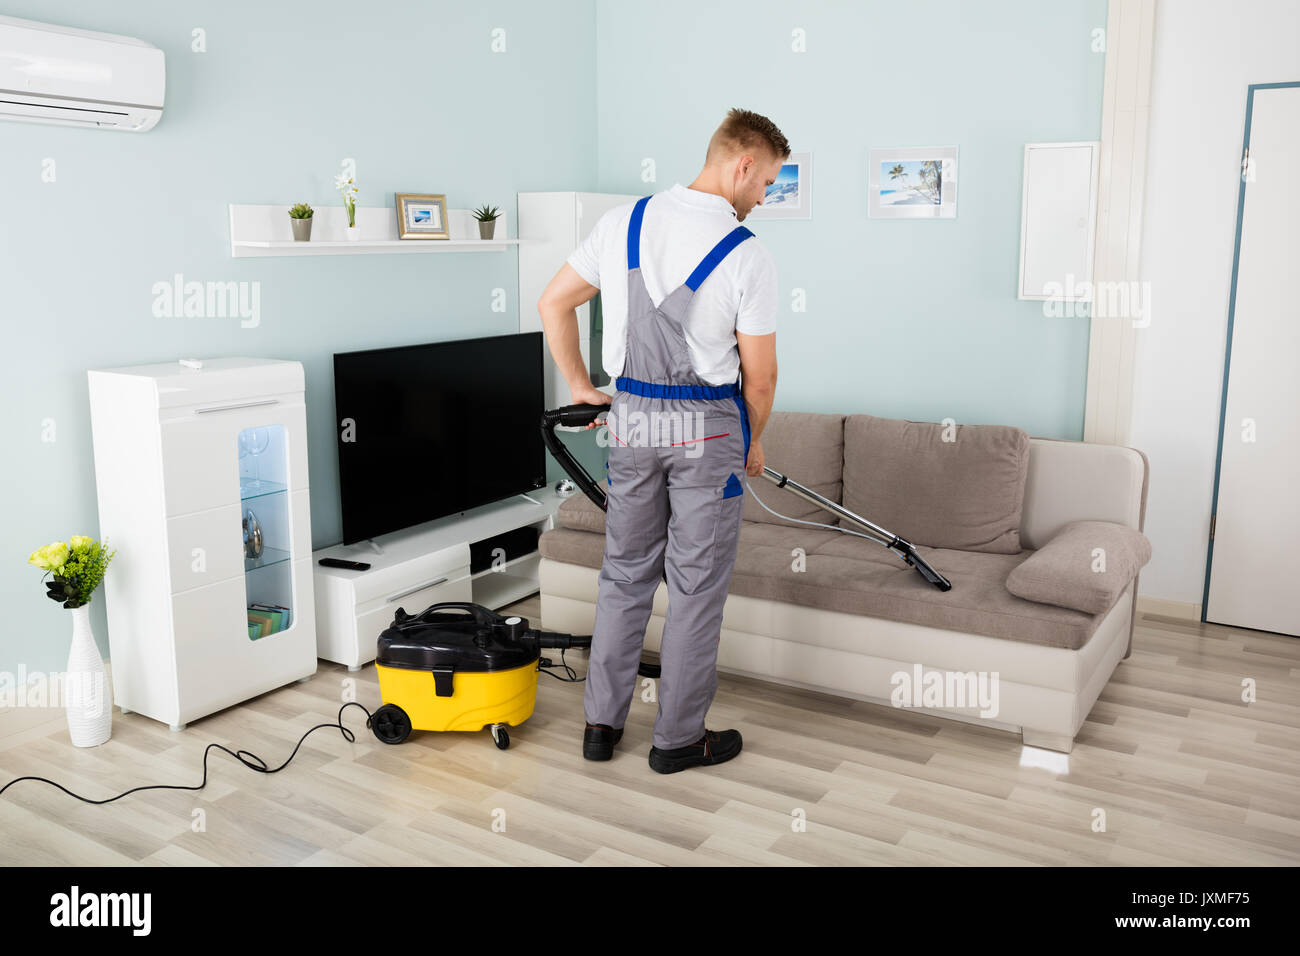 Rear View Of Young Male Worker Cleaning Sofa With Vacuum Cleaner - Stock Image